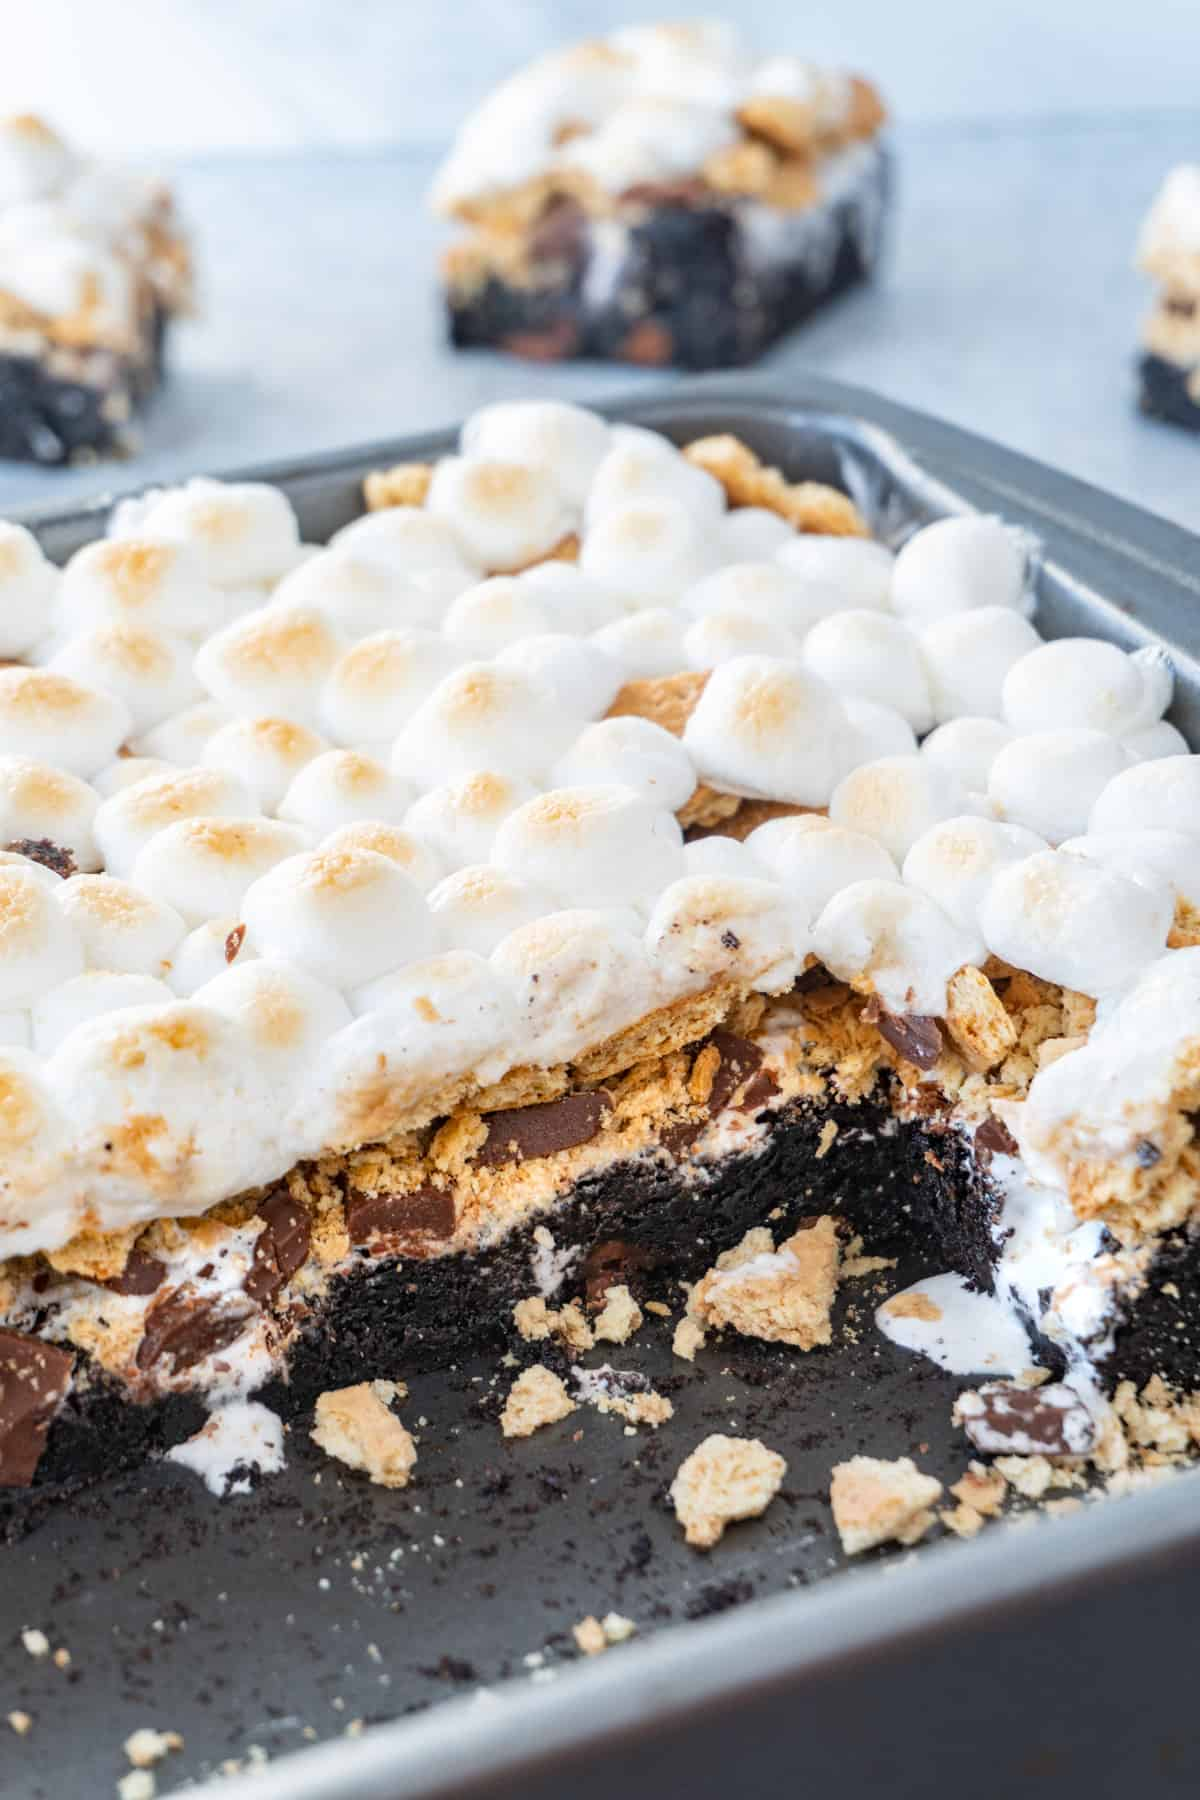 pan of s'more brownies showing layers of brownie, chocolate, marshmallow